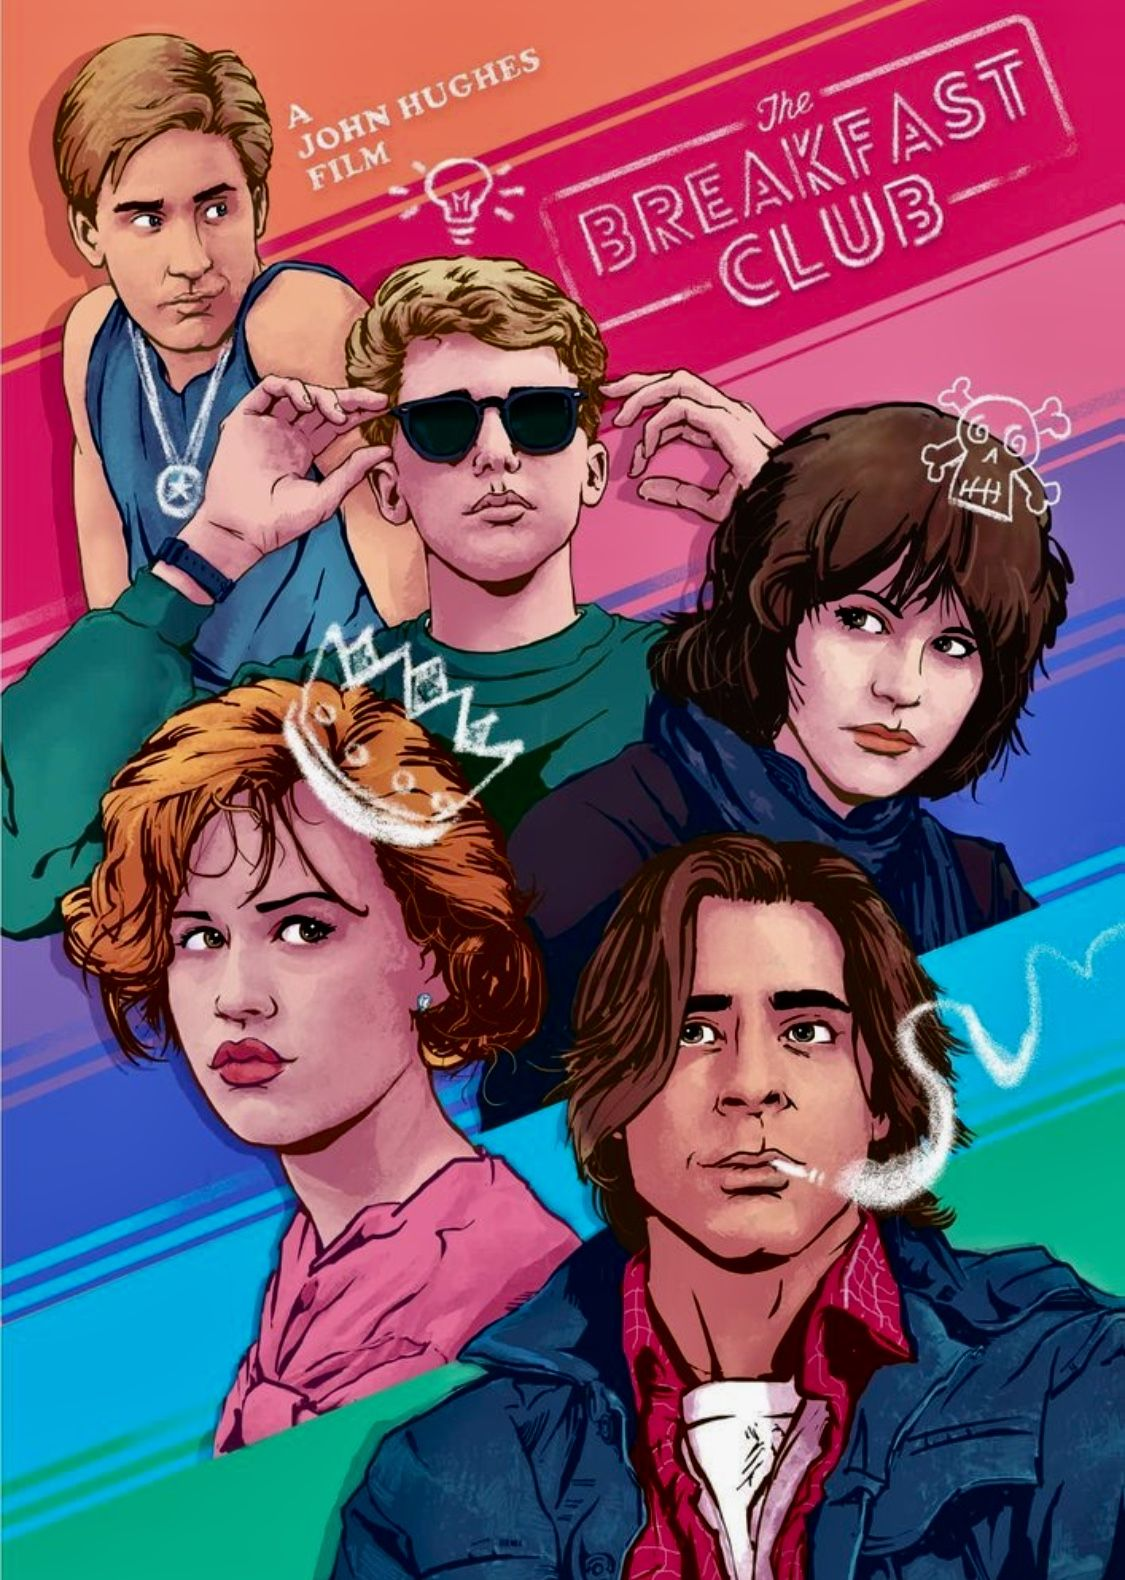 Film & Food Friday's – The Breakfast Club